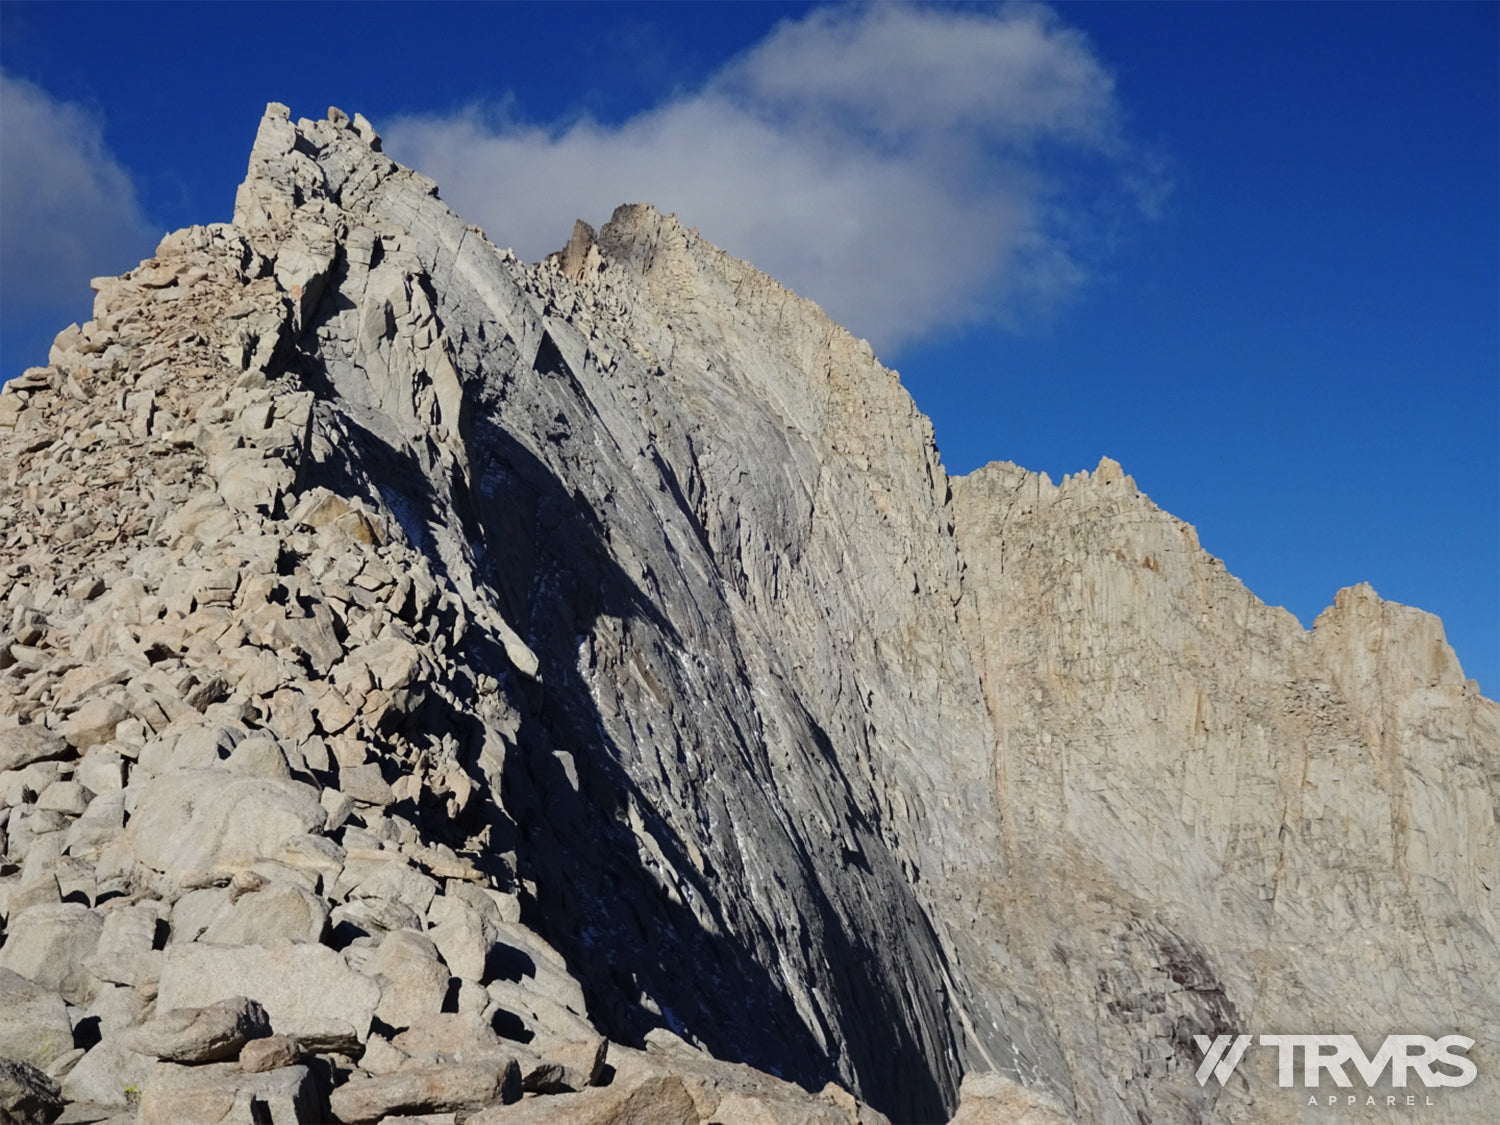 Mount Russell East Ridge from Russell-Carrillon Saddle | TRVRS APPAREL